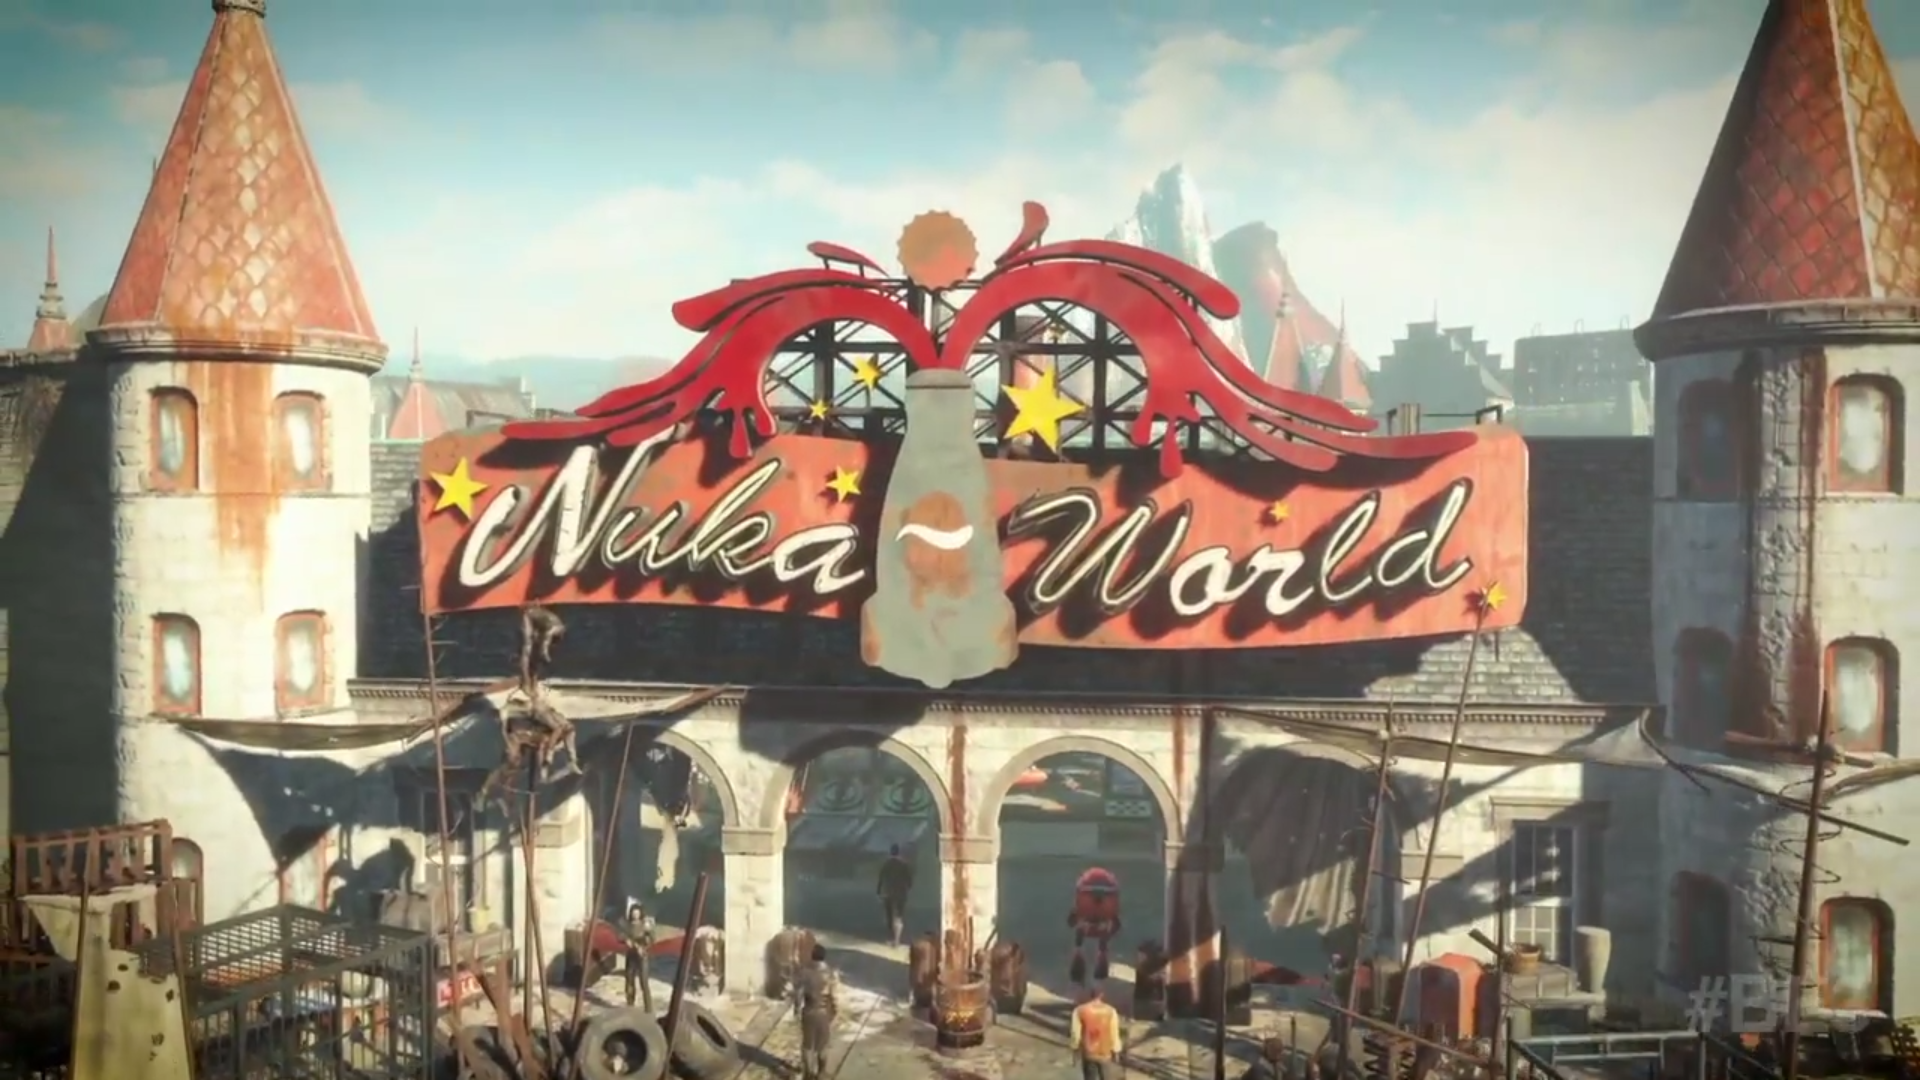 fallout 4 dlc will take you to nuka world and let you build your own